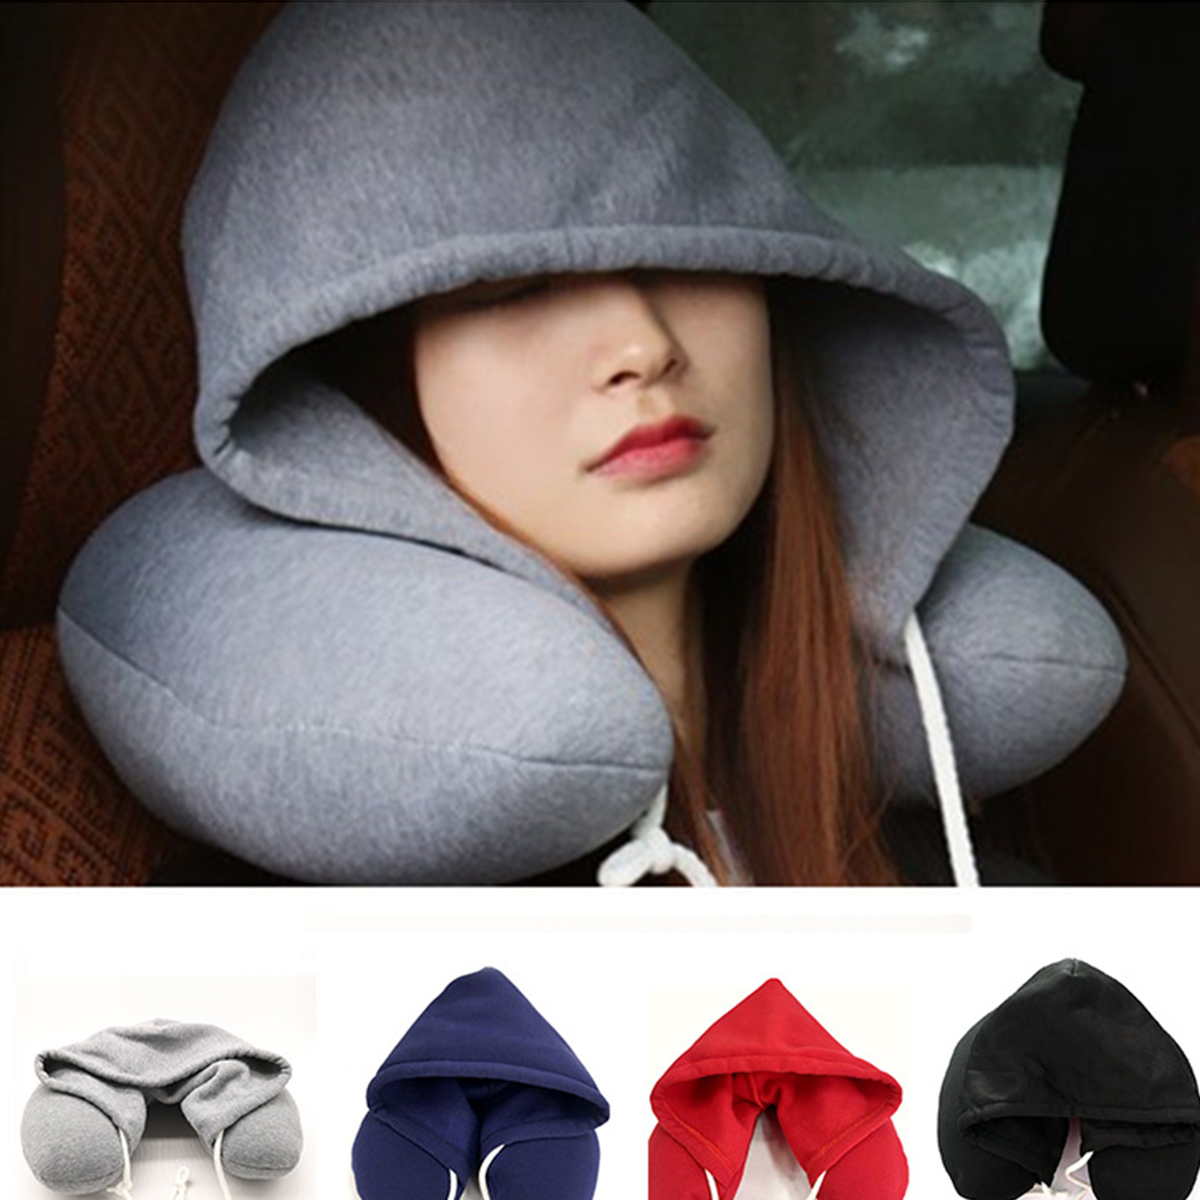 nosii soft u type neck pillow hoodie microfiber neck rest pillow with drawstring travel afternoon nap